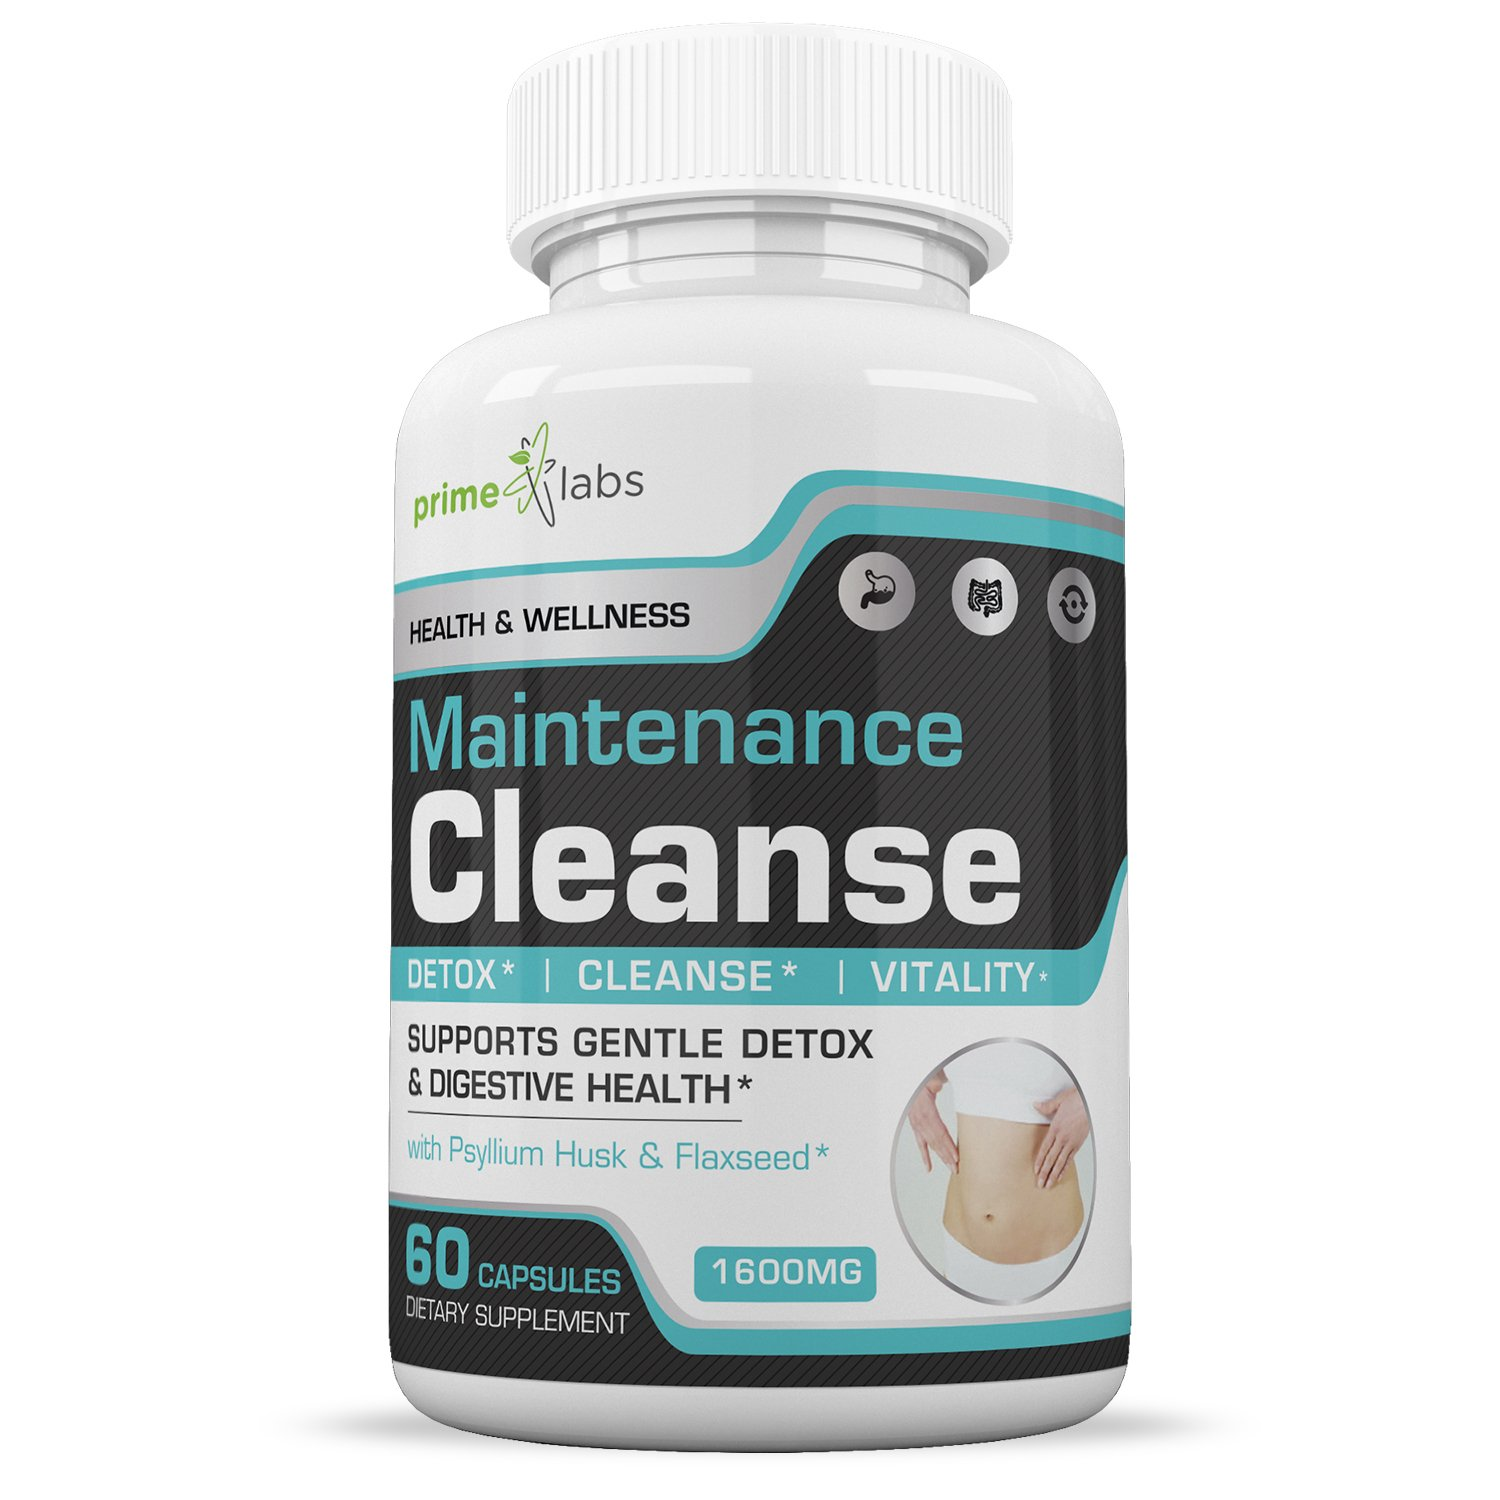 Maintenance Cleanse Colon Support Supplement — Your Daily Pure Maintenance Cleanse, with Fiber to Eliminate Toxins and Lose Weight, Maximum Strength for Increased Energy - 60 Capsules